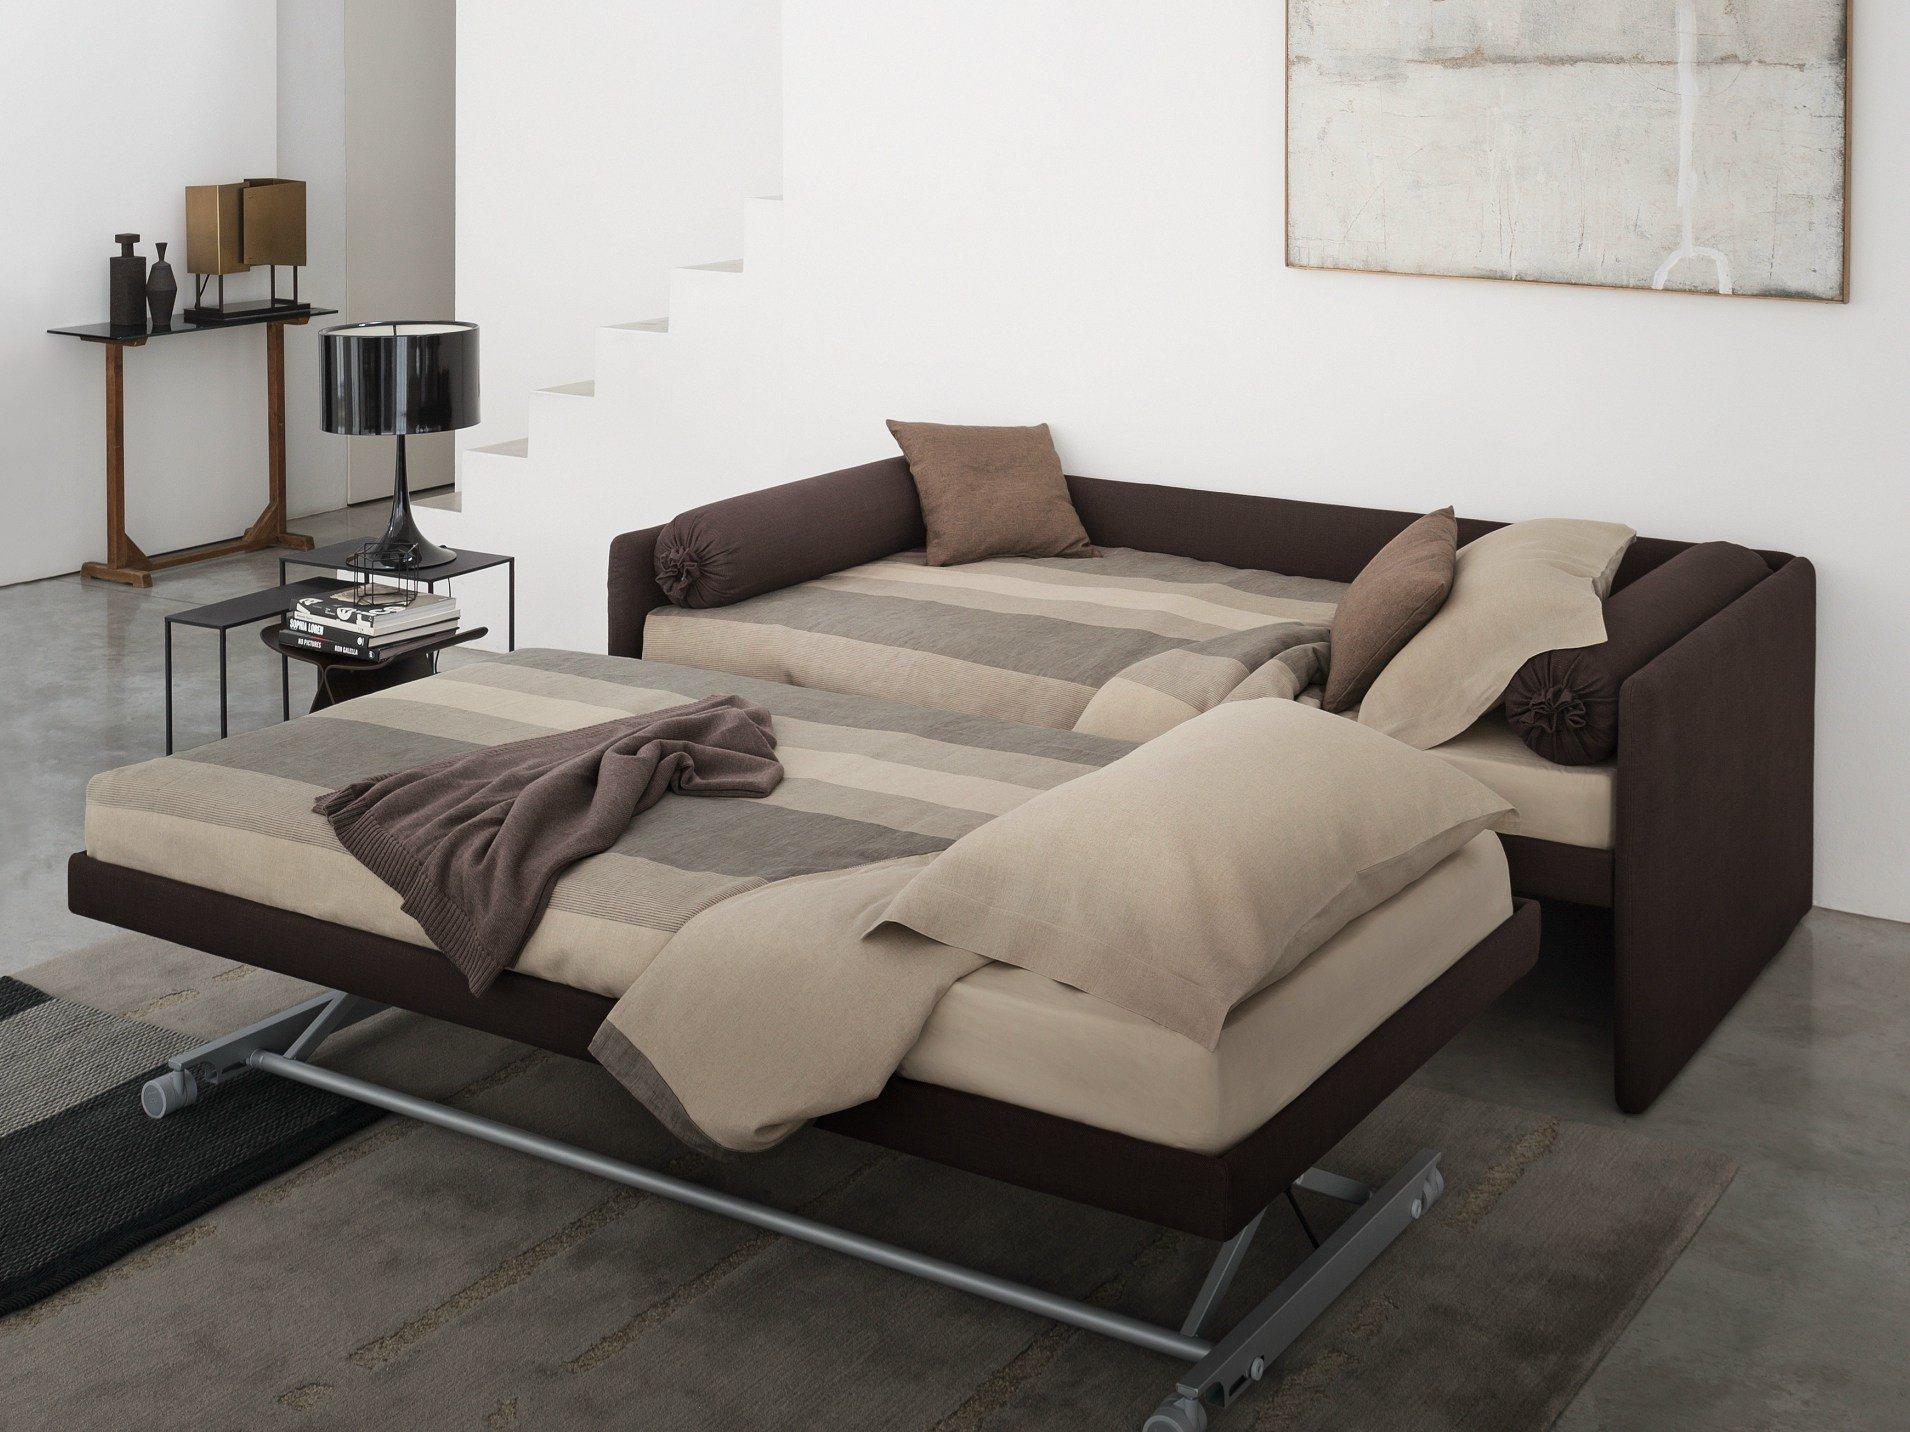 Duetto Flou Outlet. Letti Flou Outlet Essentia Letto Flou With Letti ...